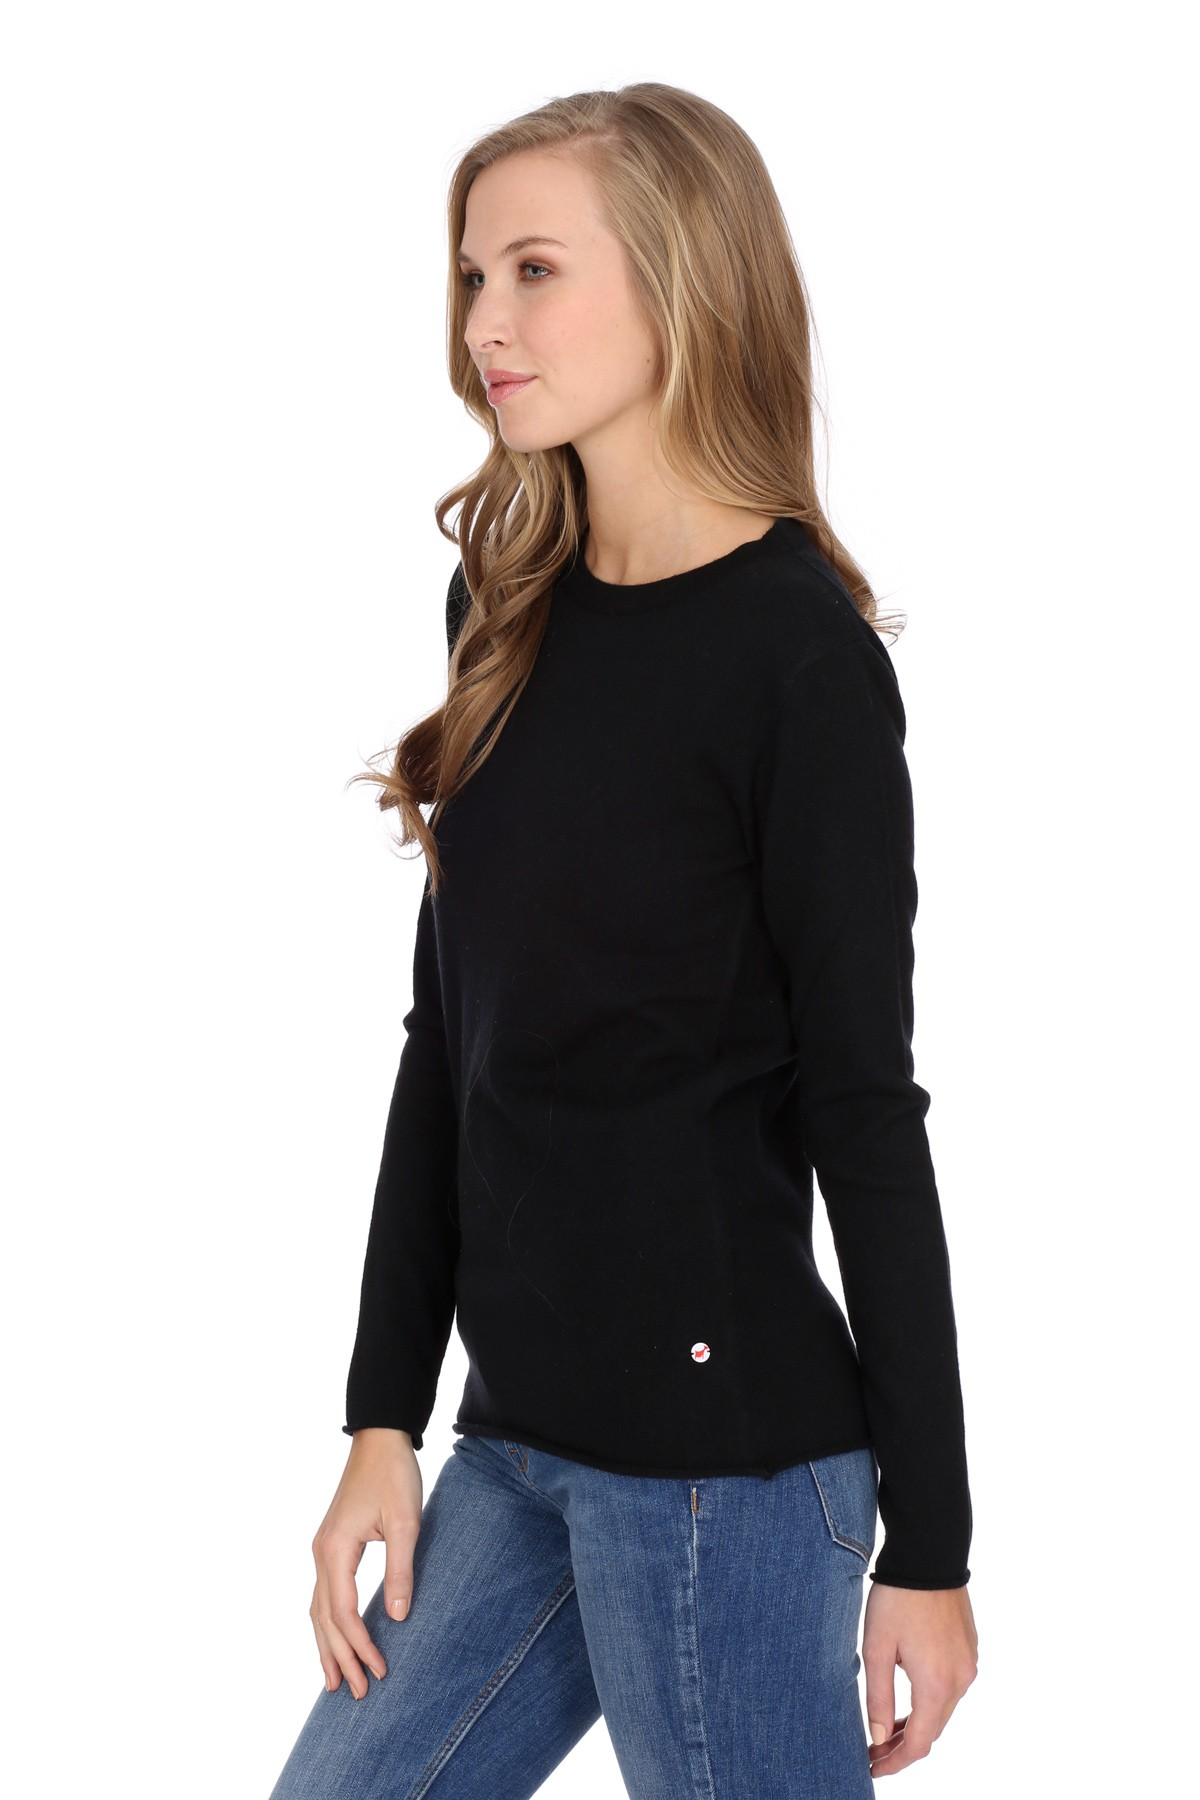 Women's long sleeve cashmere top black